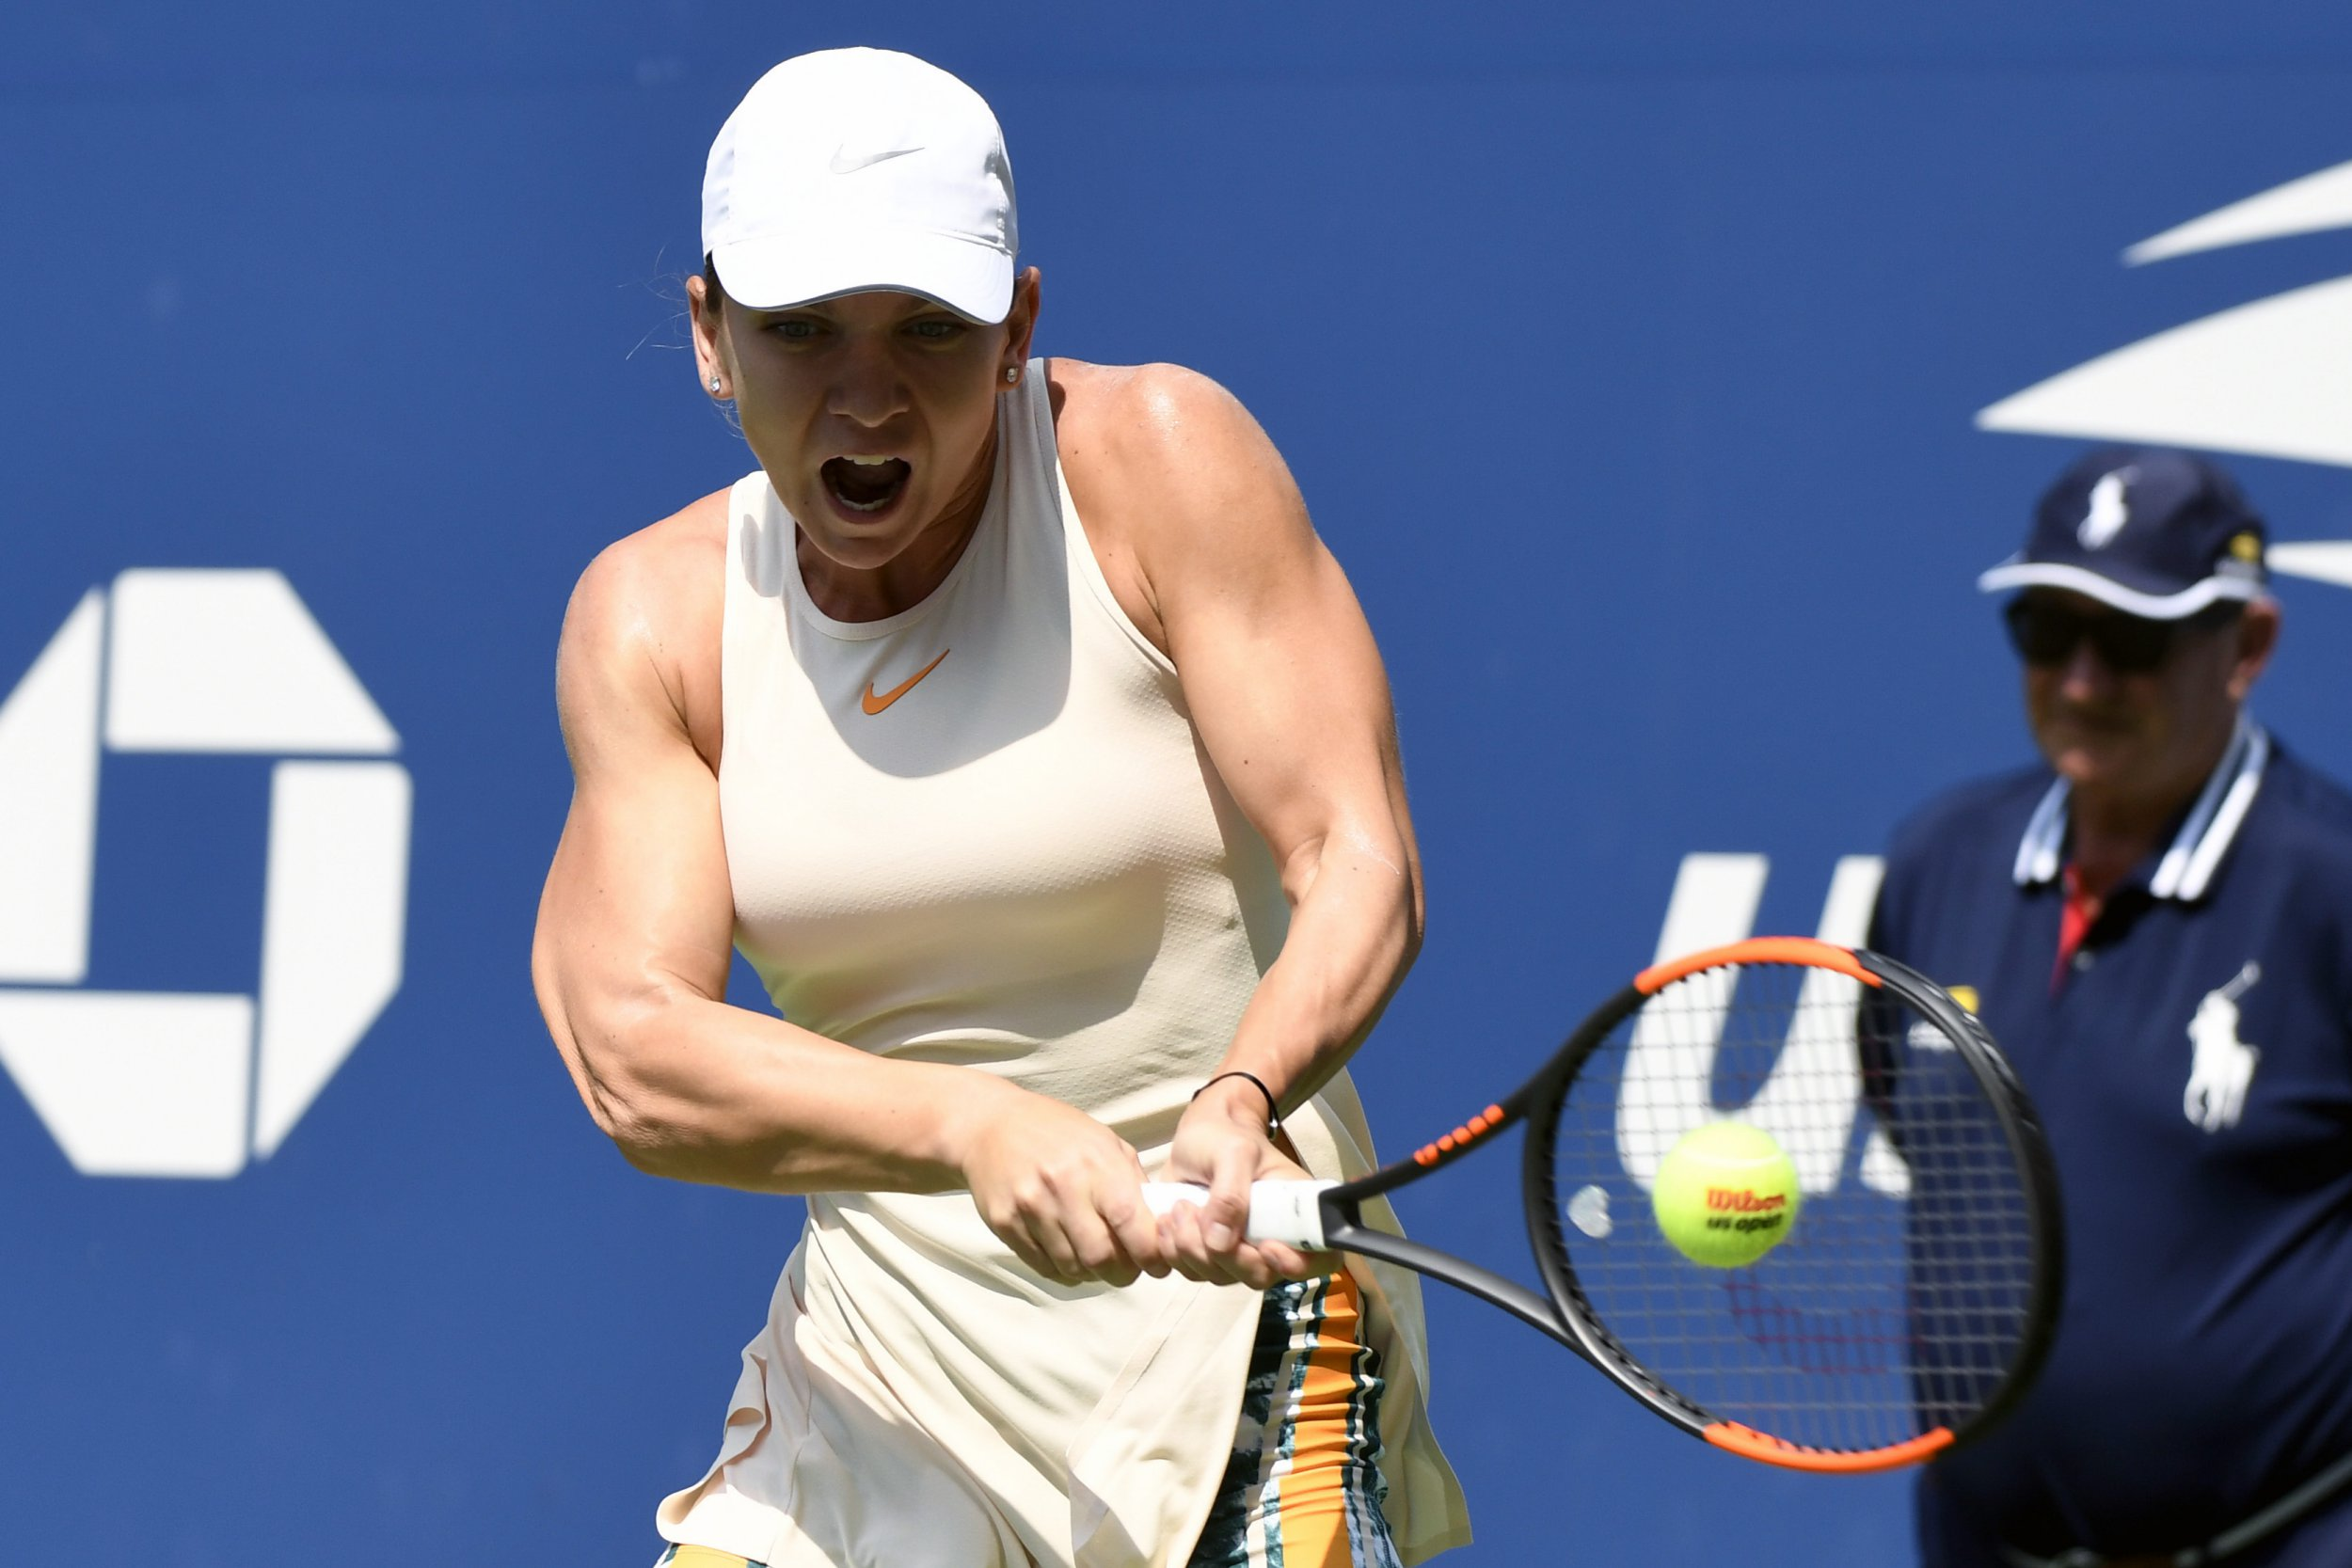 World No. 1 Simona Halep makes unwanted piece of history with shock US Open first-round exit